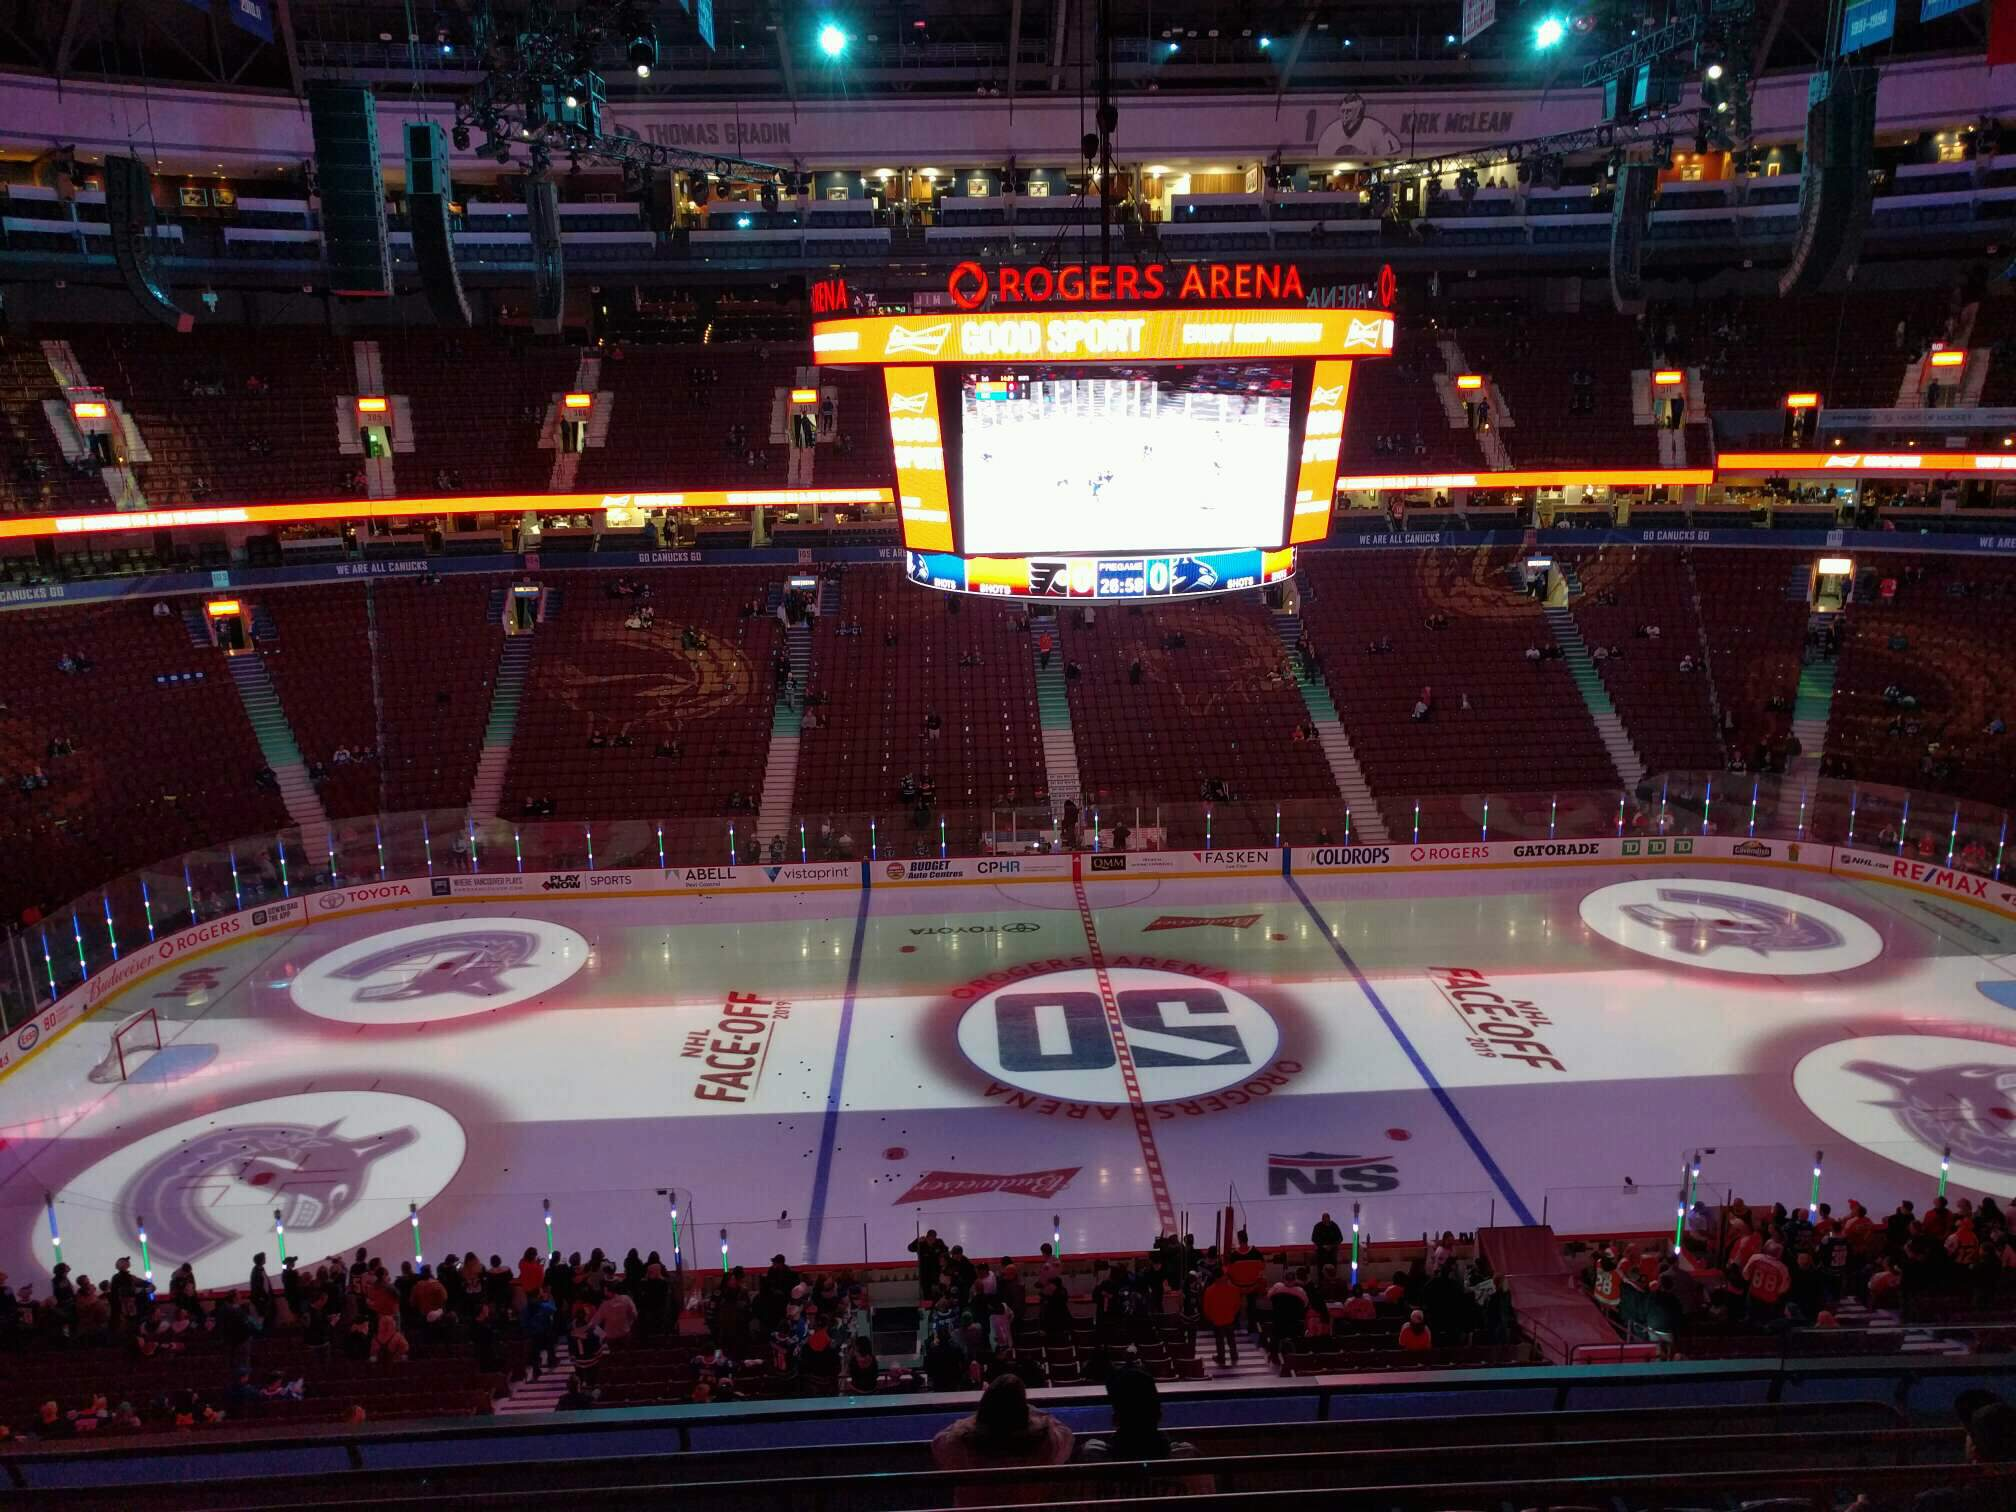 Rogers Arena Section 323 Row 8 Seat 106